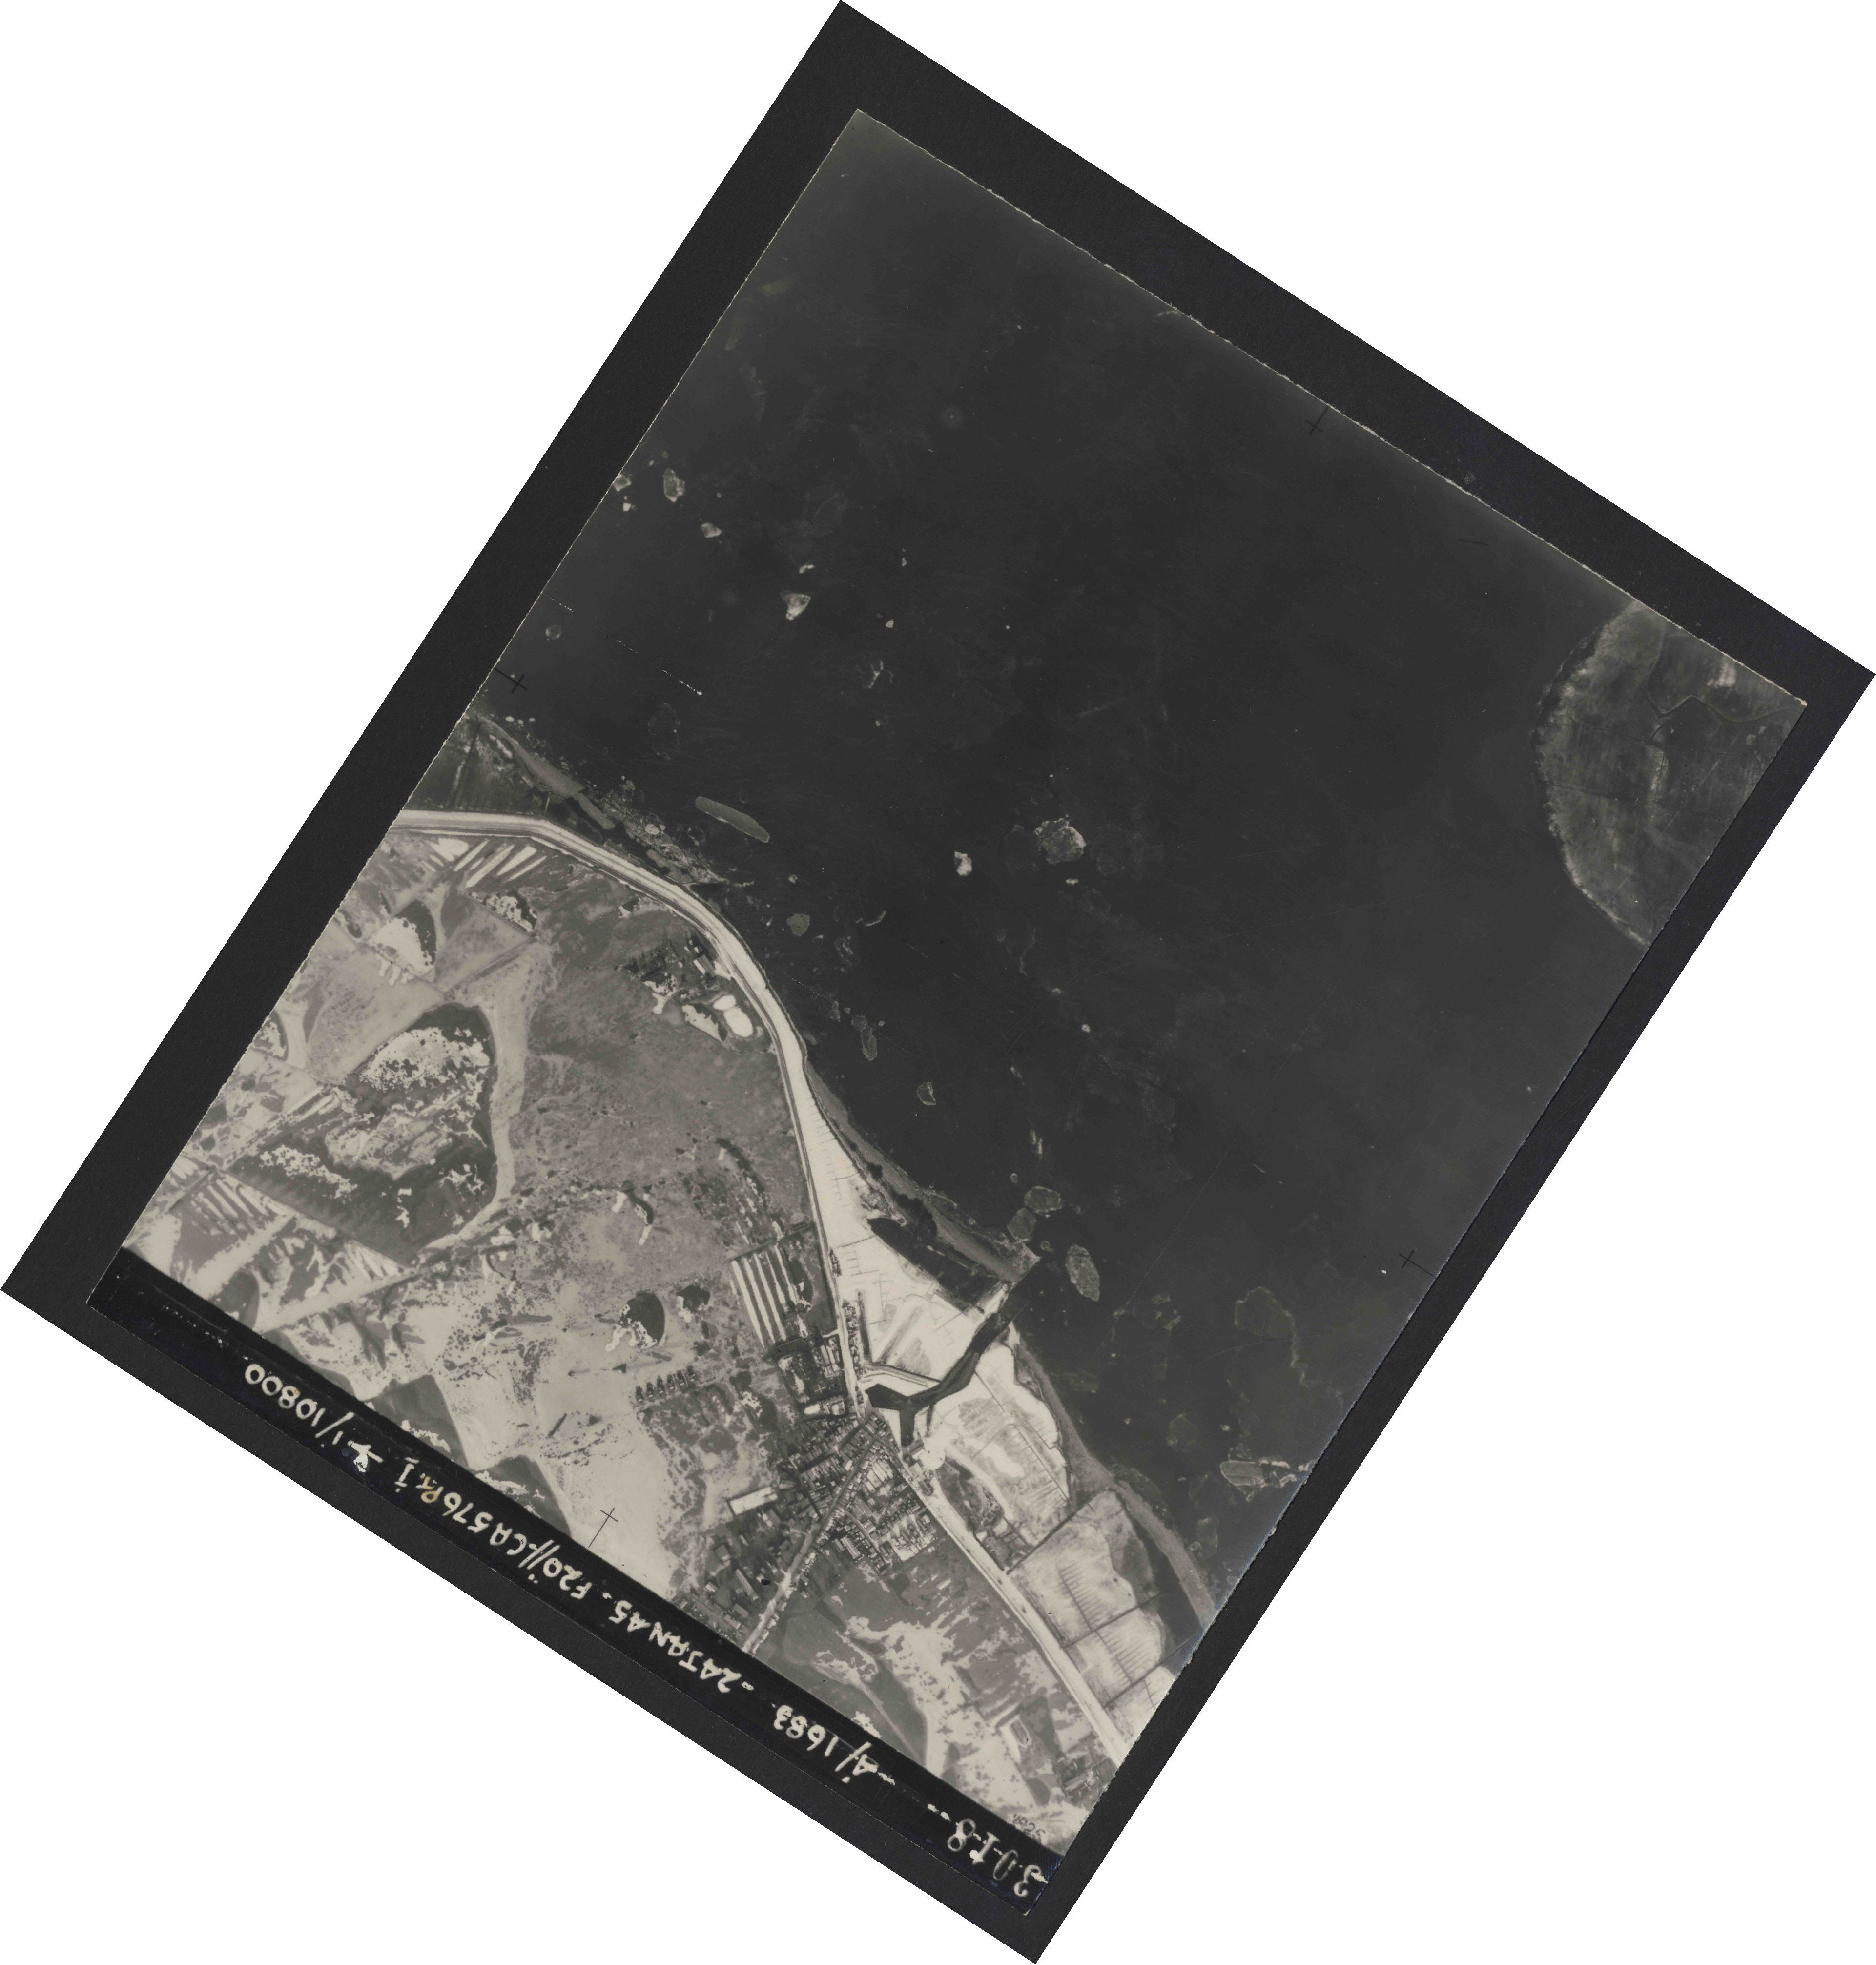 Collection RAF aerial photos 1940-1945 - flight 268, run 01, photo 3018